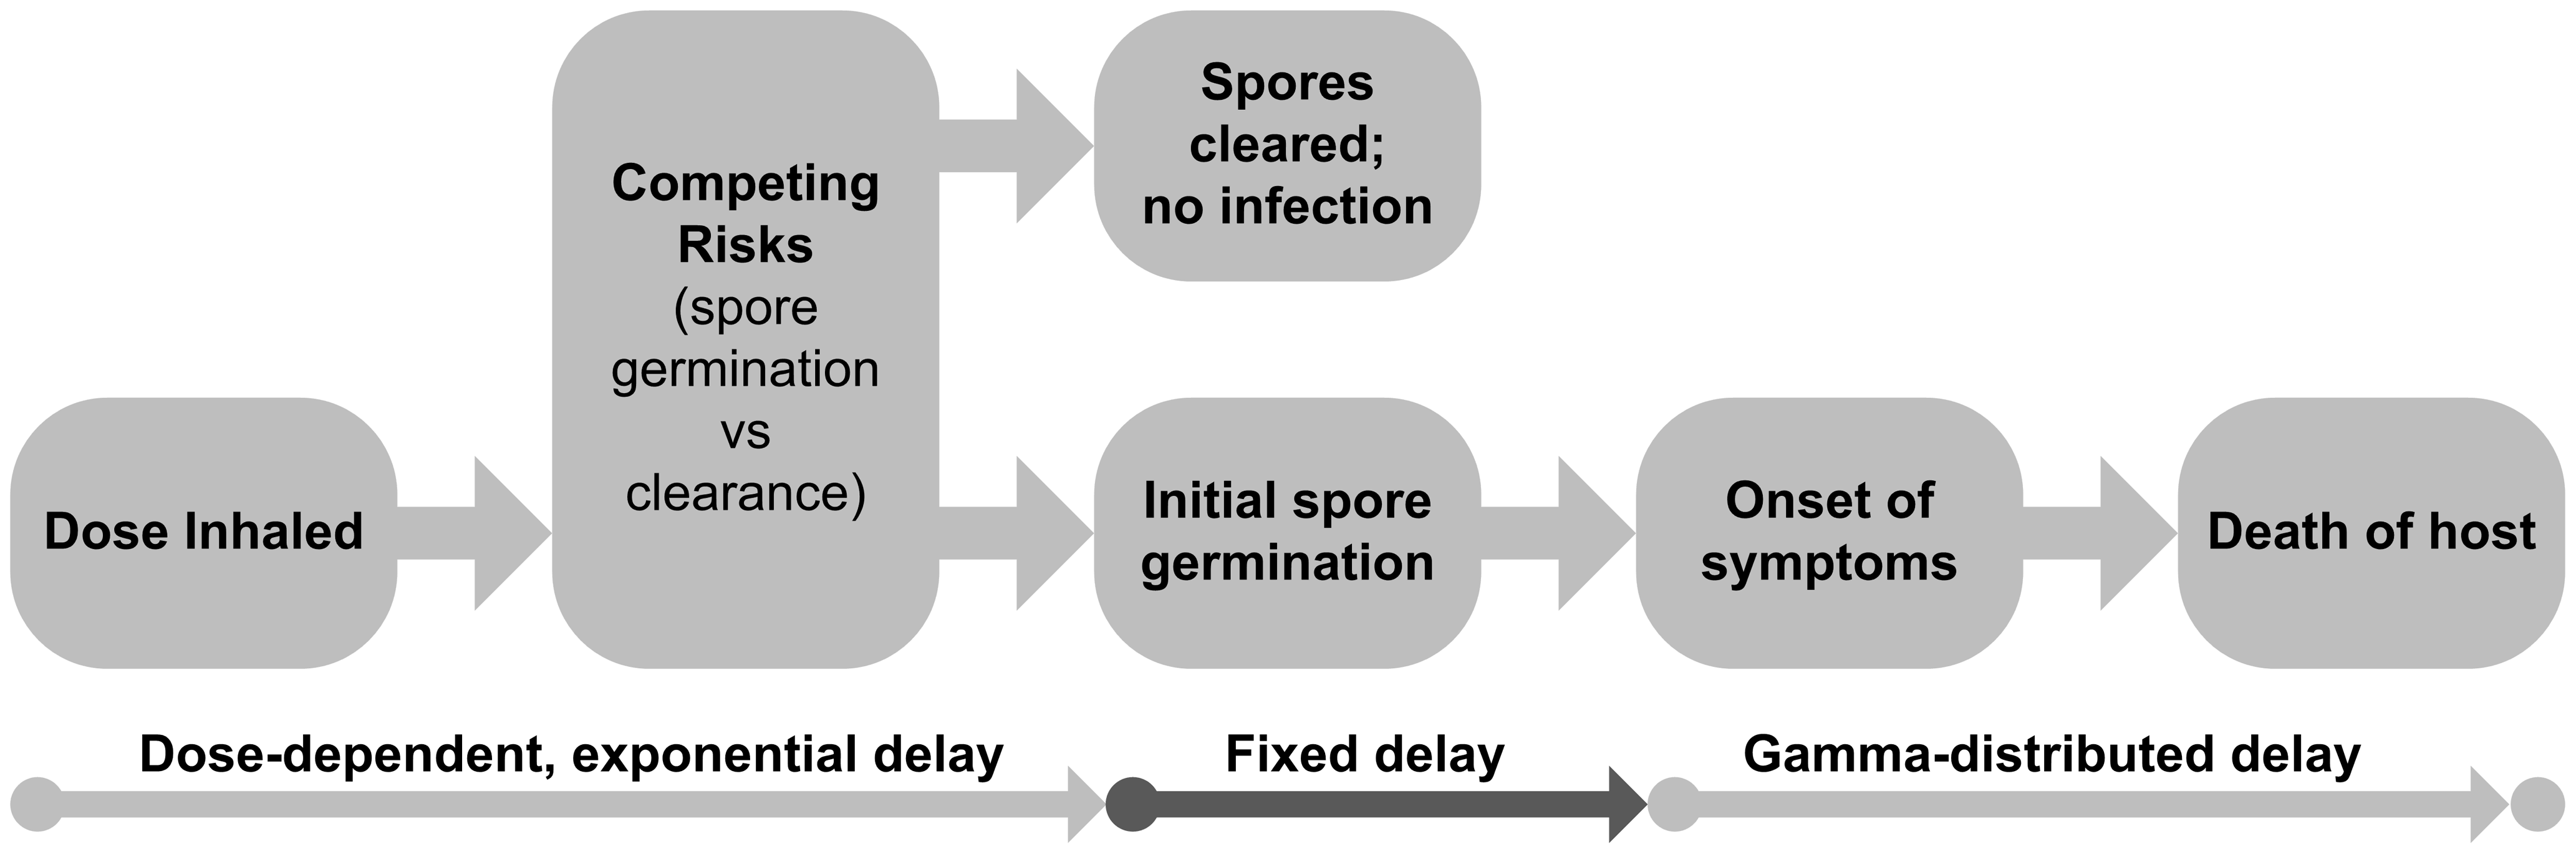 Schematic of the determination of infection and the infection timeline for anthrax.